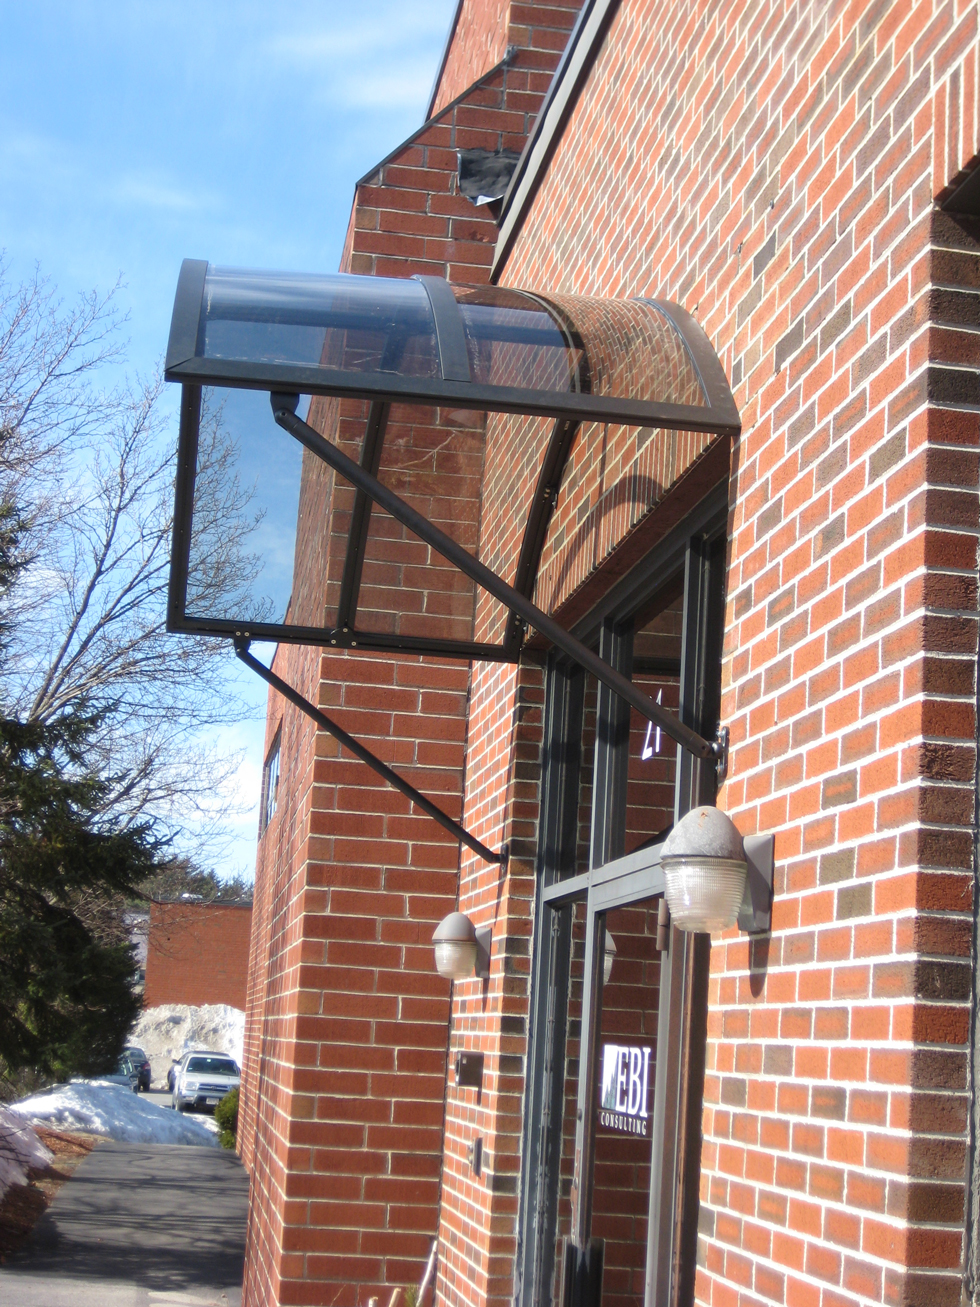 Retractable Awnings Reviews 28 Images Retractable Awning Review Retractable Awning Review